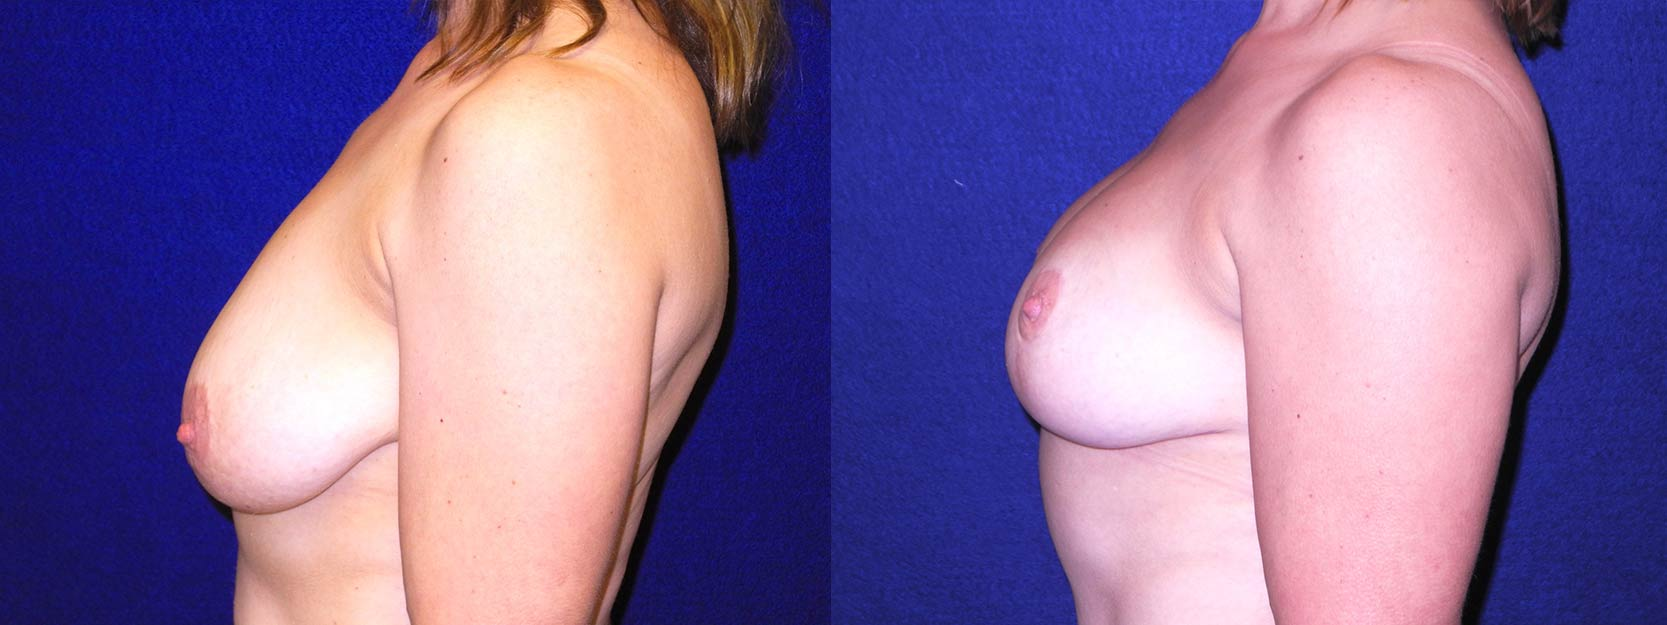 Left Profile View - Breast Lift After Pregnancy & Weight Loss